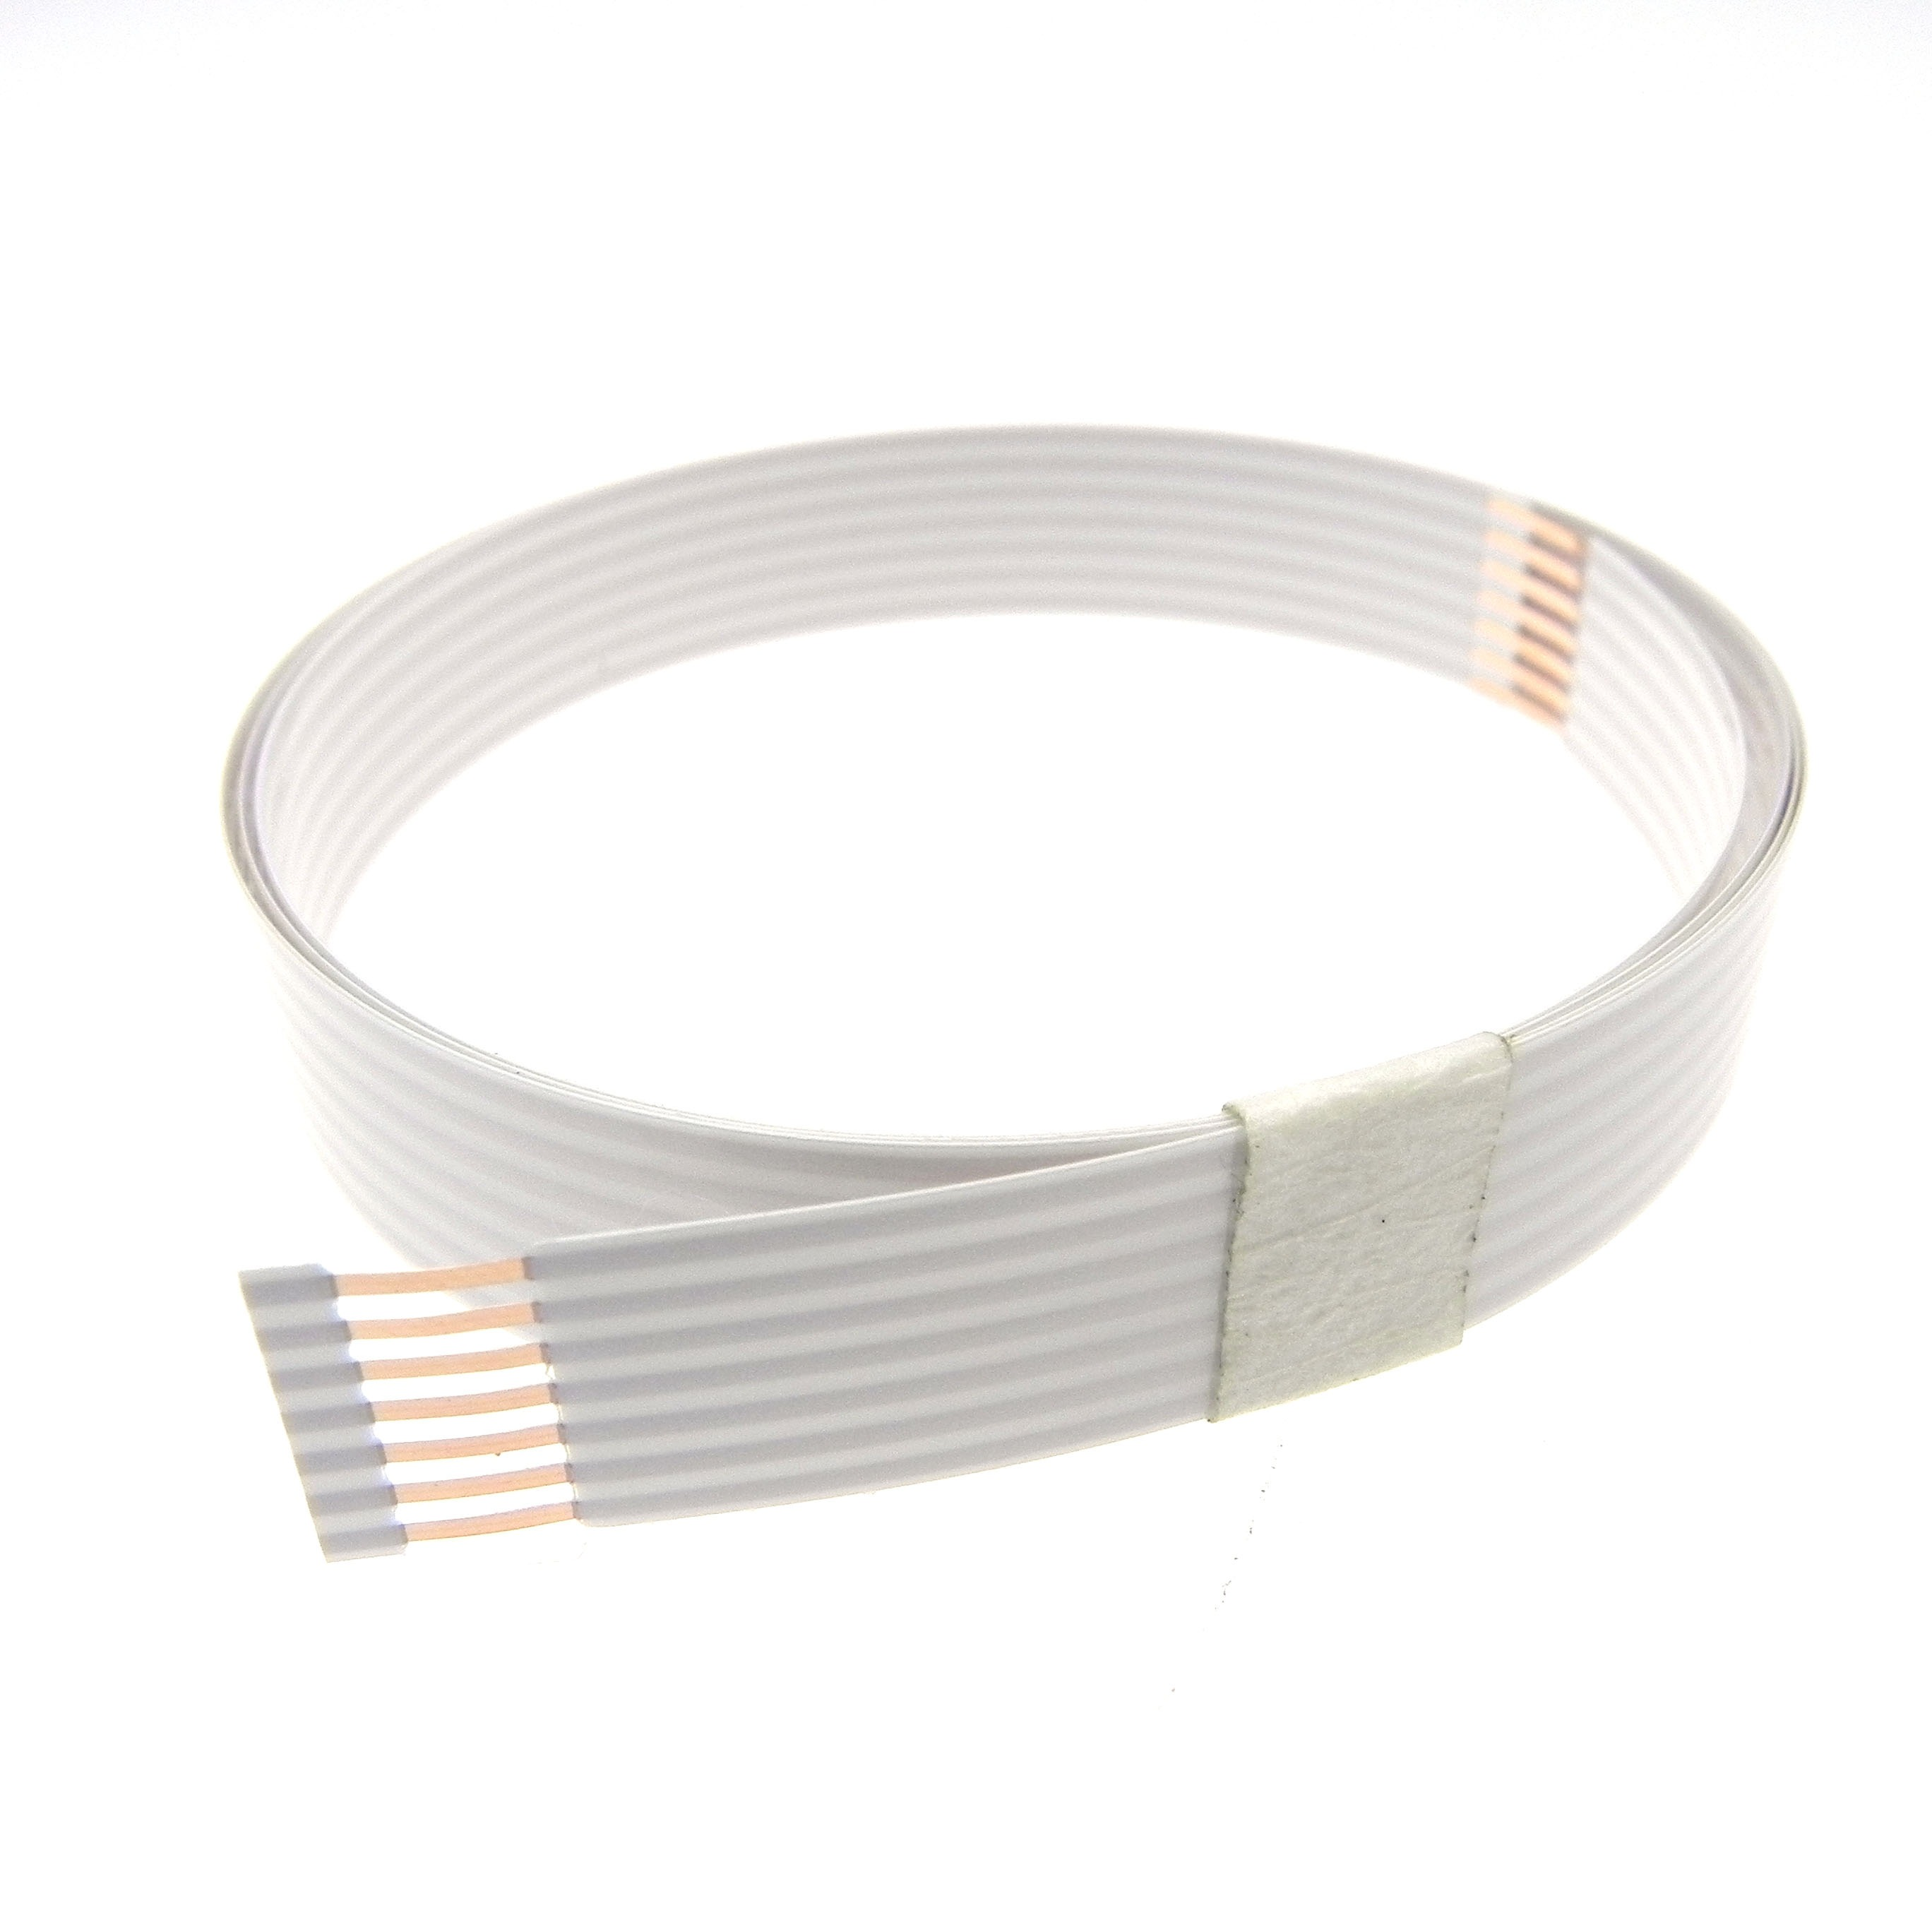 7pin 9.4mm width 538mm  ffc airbag flexible flat cable for clock spring